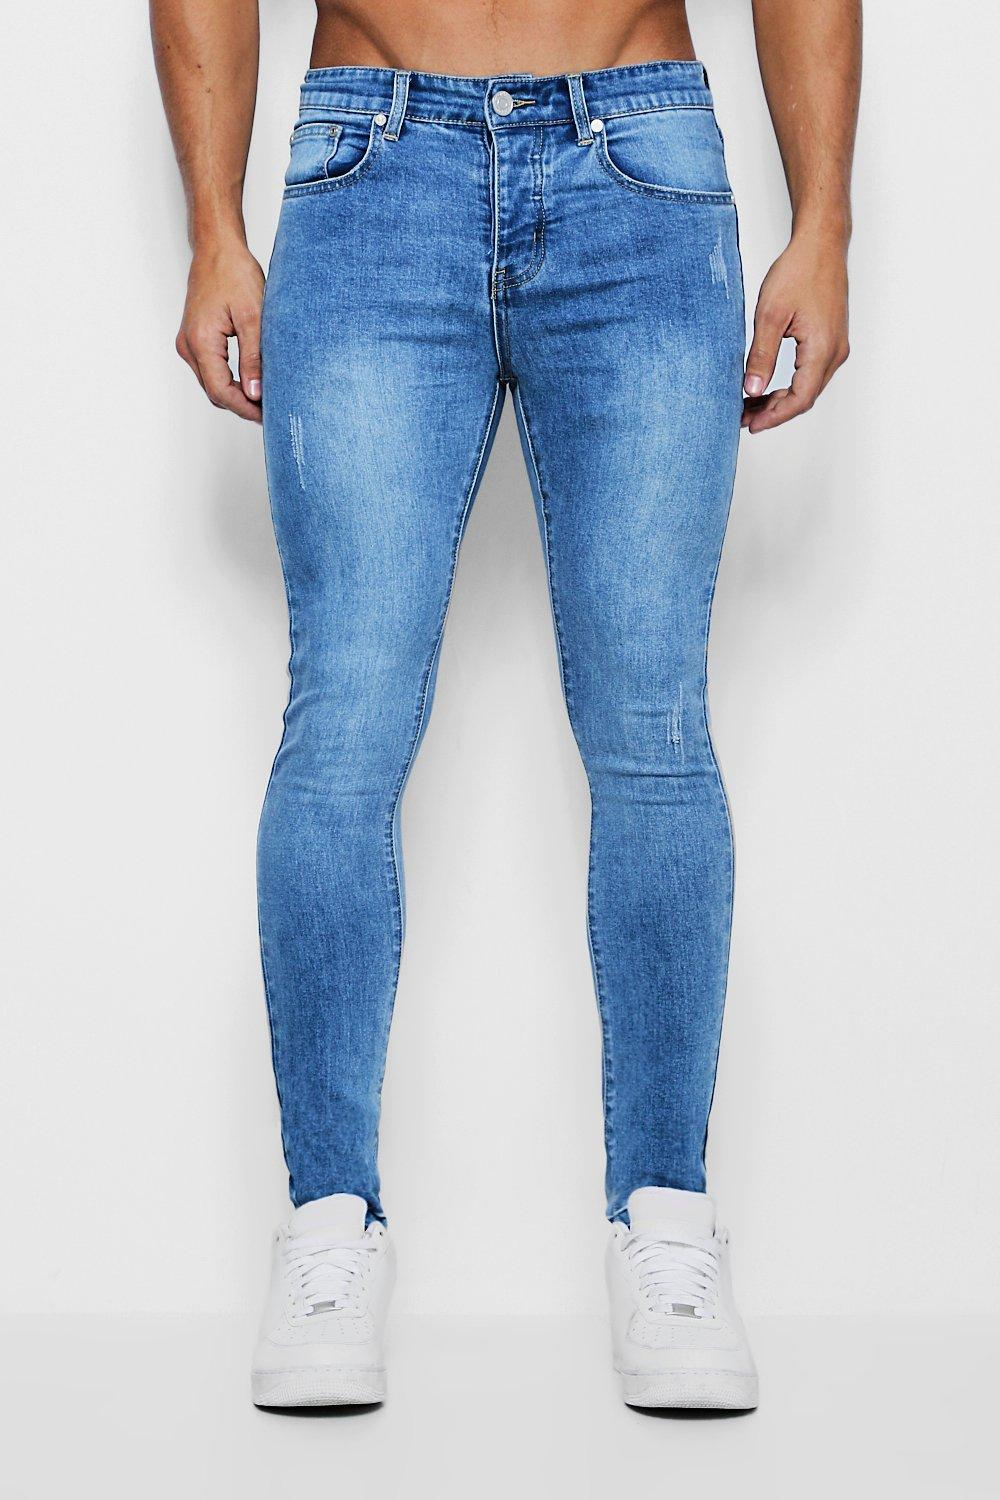 4a71482d35d2e BoohooMAN Super Skinny Jeans With Let Down Hem in Blue for Men - Lyst